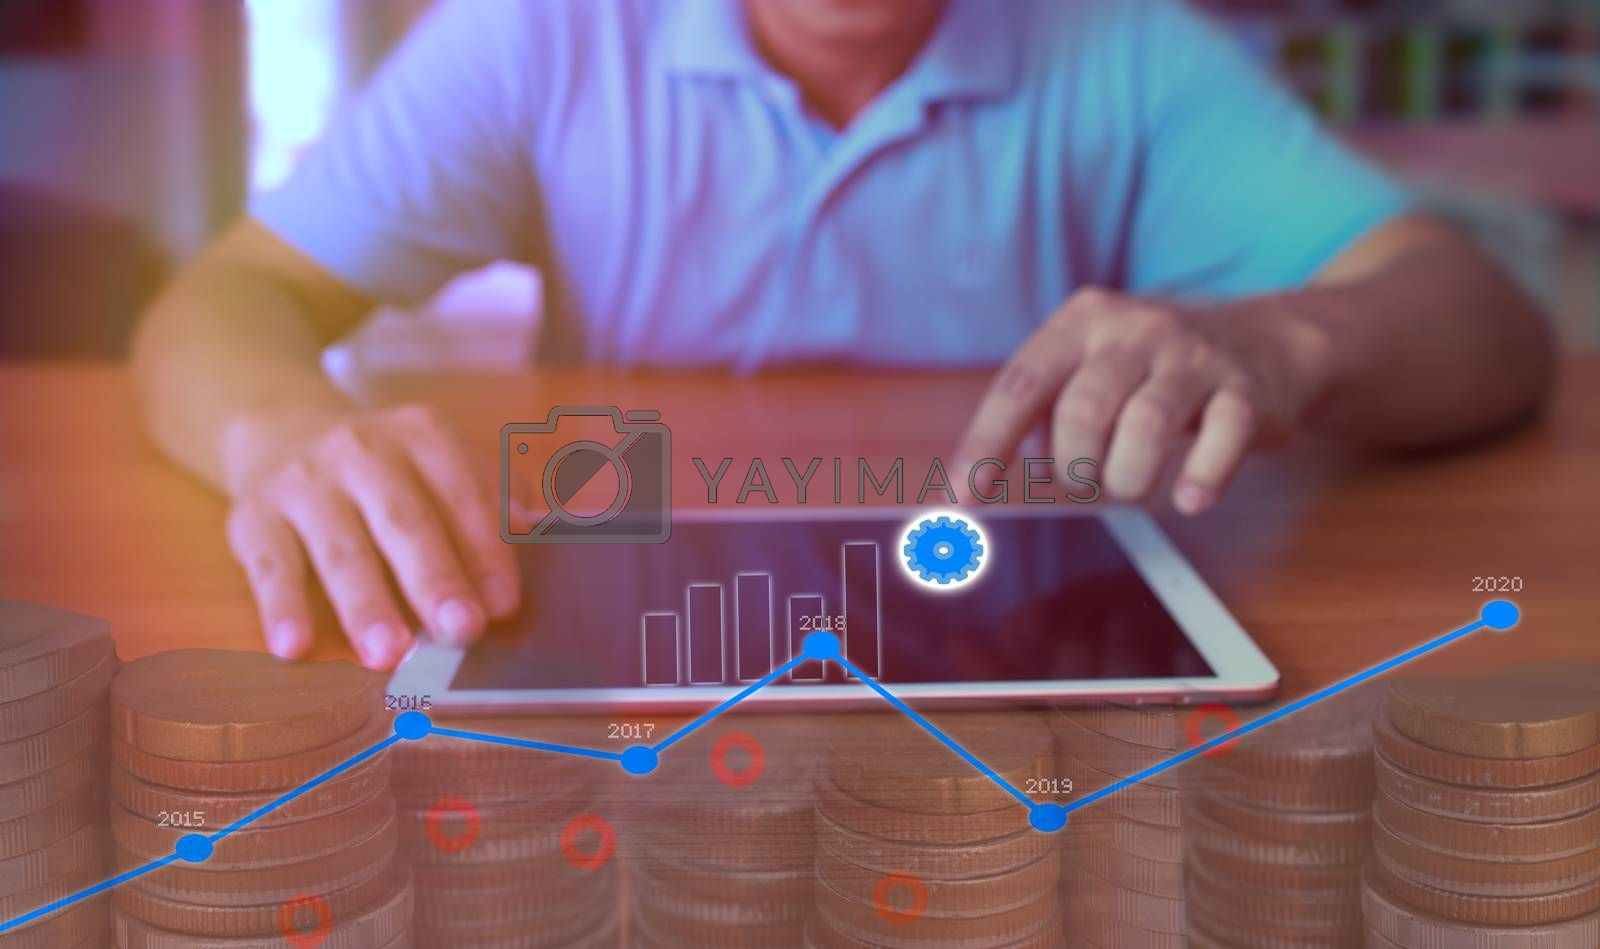 On-screen digital marketing concept showing investment growth.